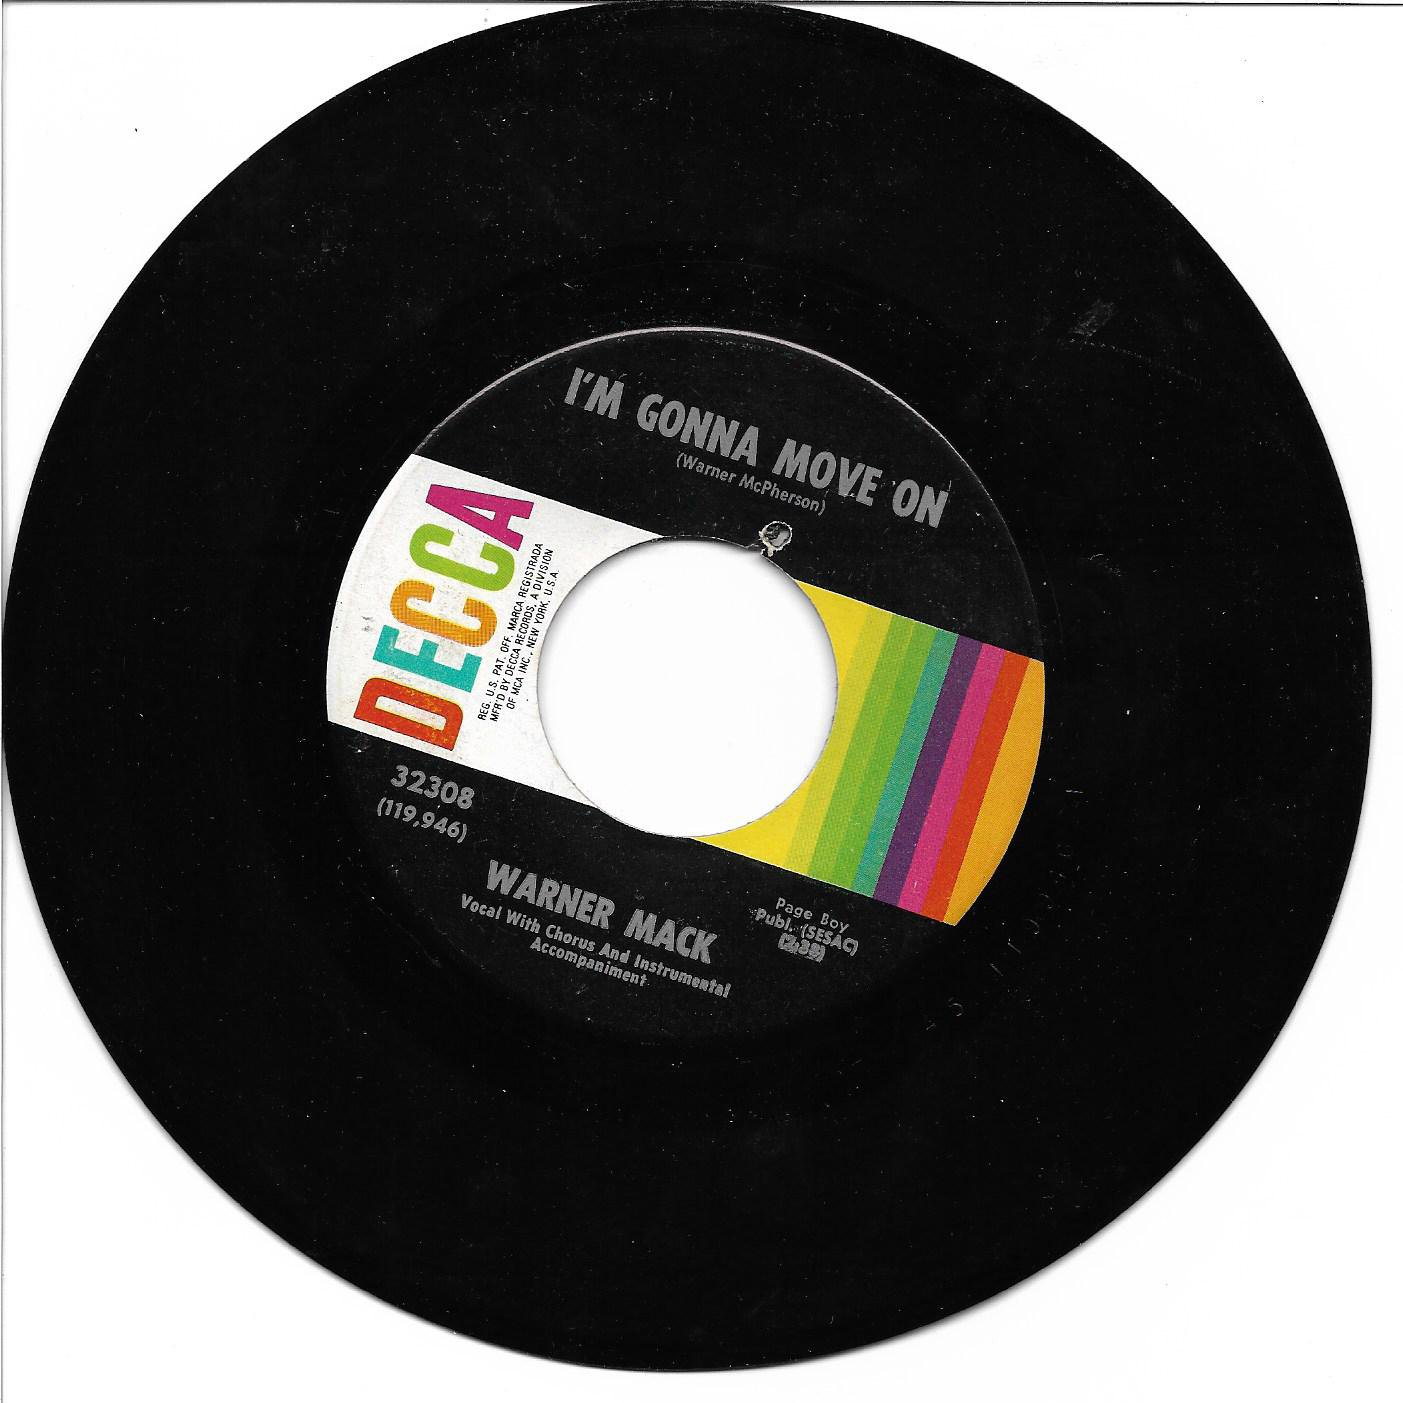 """Warner Mack: """"I'm Gonna Move On"""" / """"Tell Me To Go (Tell Me To Stay)"""" - Near Mint!"""